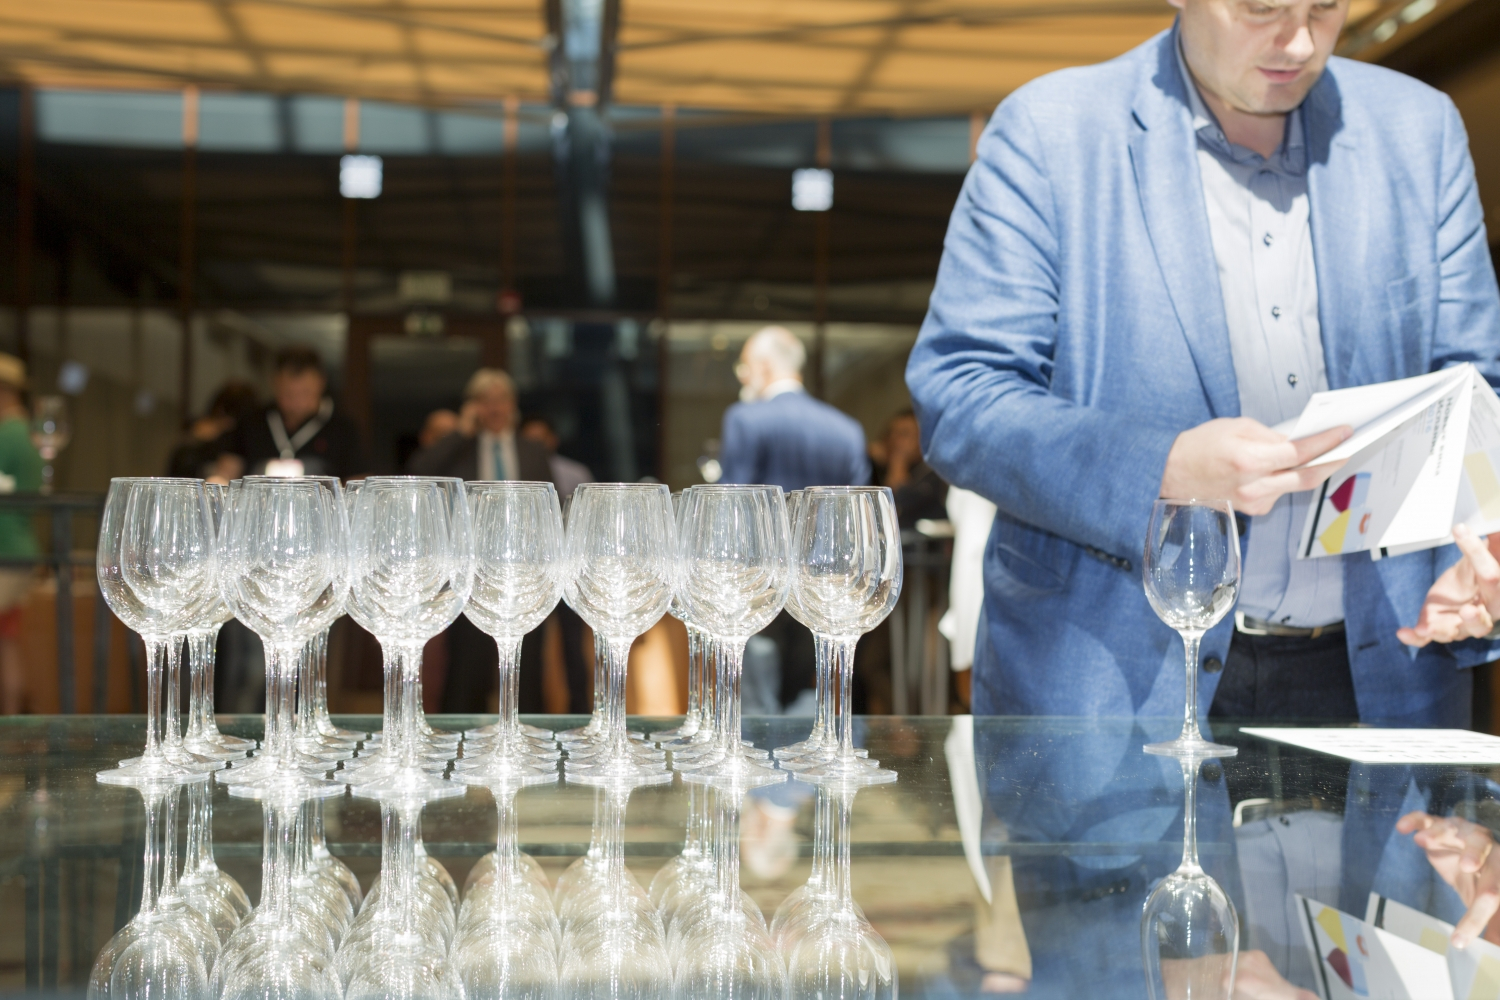 2nd_edition_new_wines_from_spain_icex_may_2016_moscow_1500x1000_1_20170120_1728989739